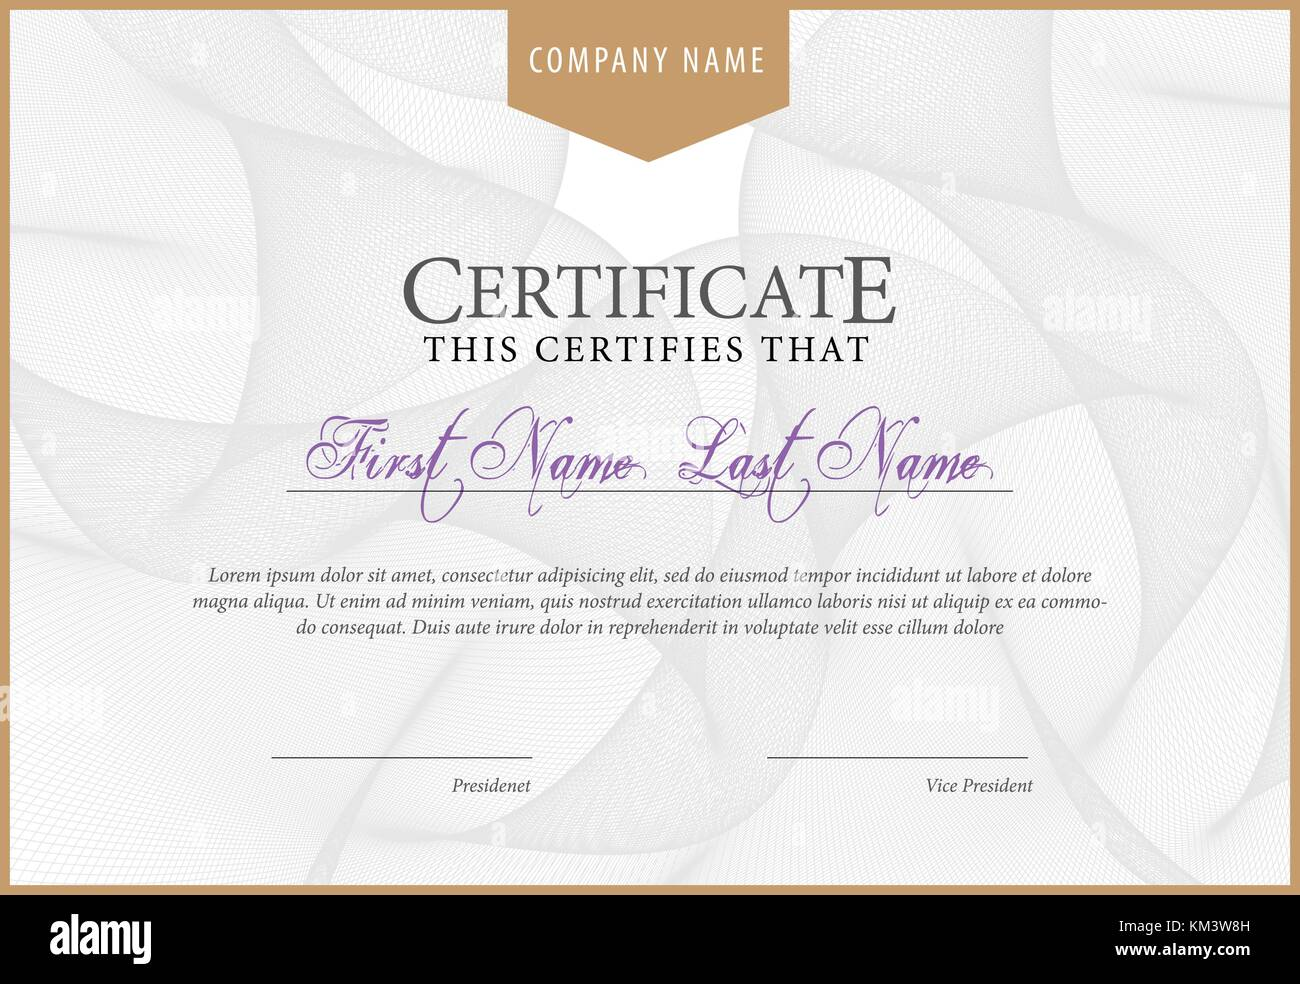 Award Certificate Stock Photos & Award Certificate Stock Images - Alamy